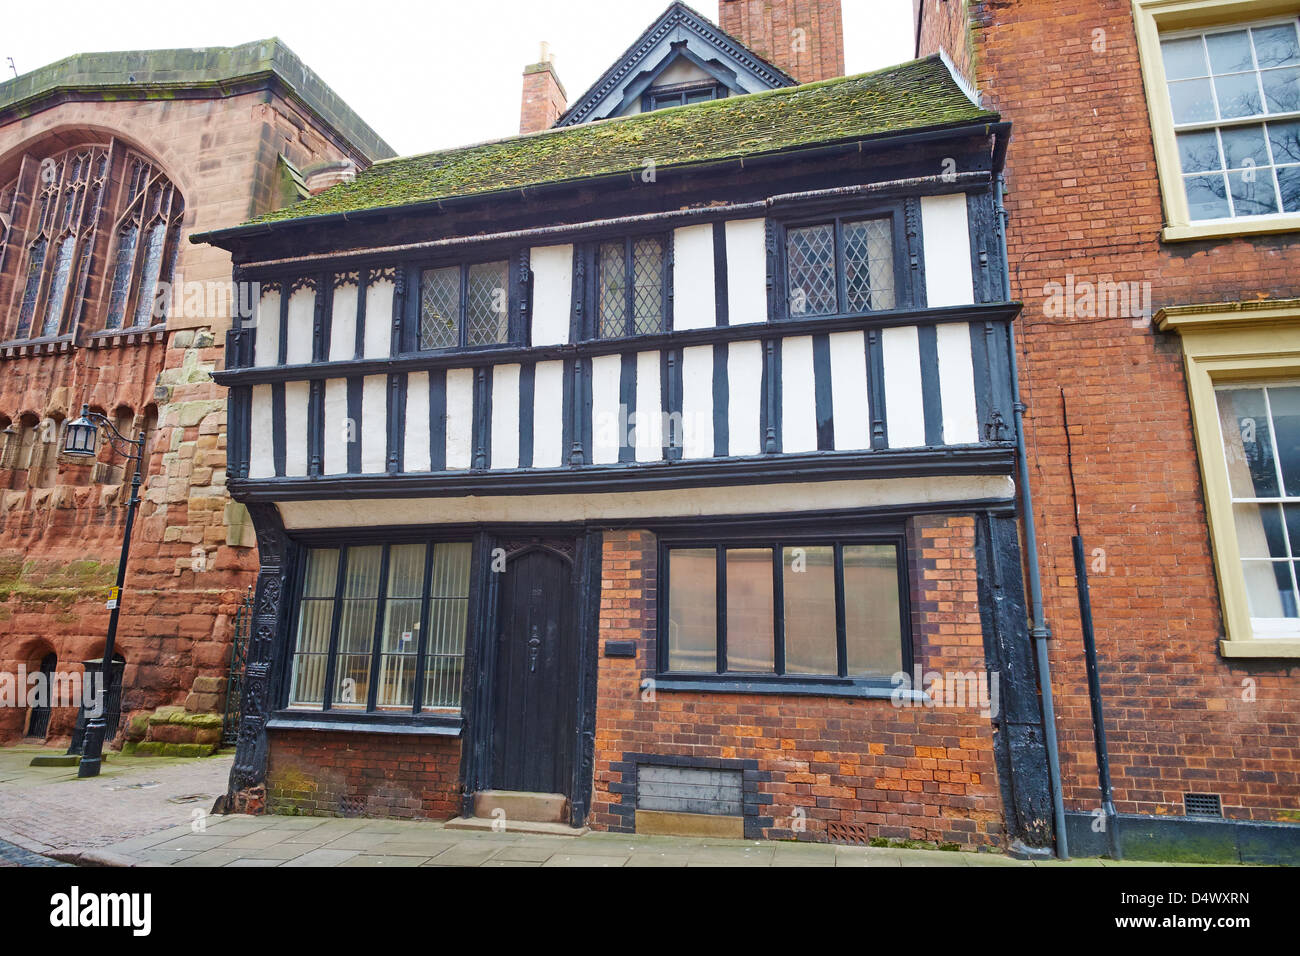 Medieval Timber Framed Cottage Bayley Lane Coventry West Midlands UK - Stock Image